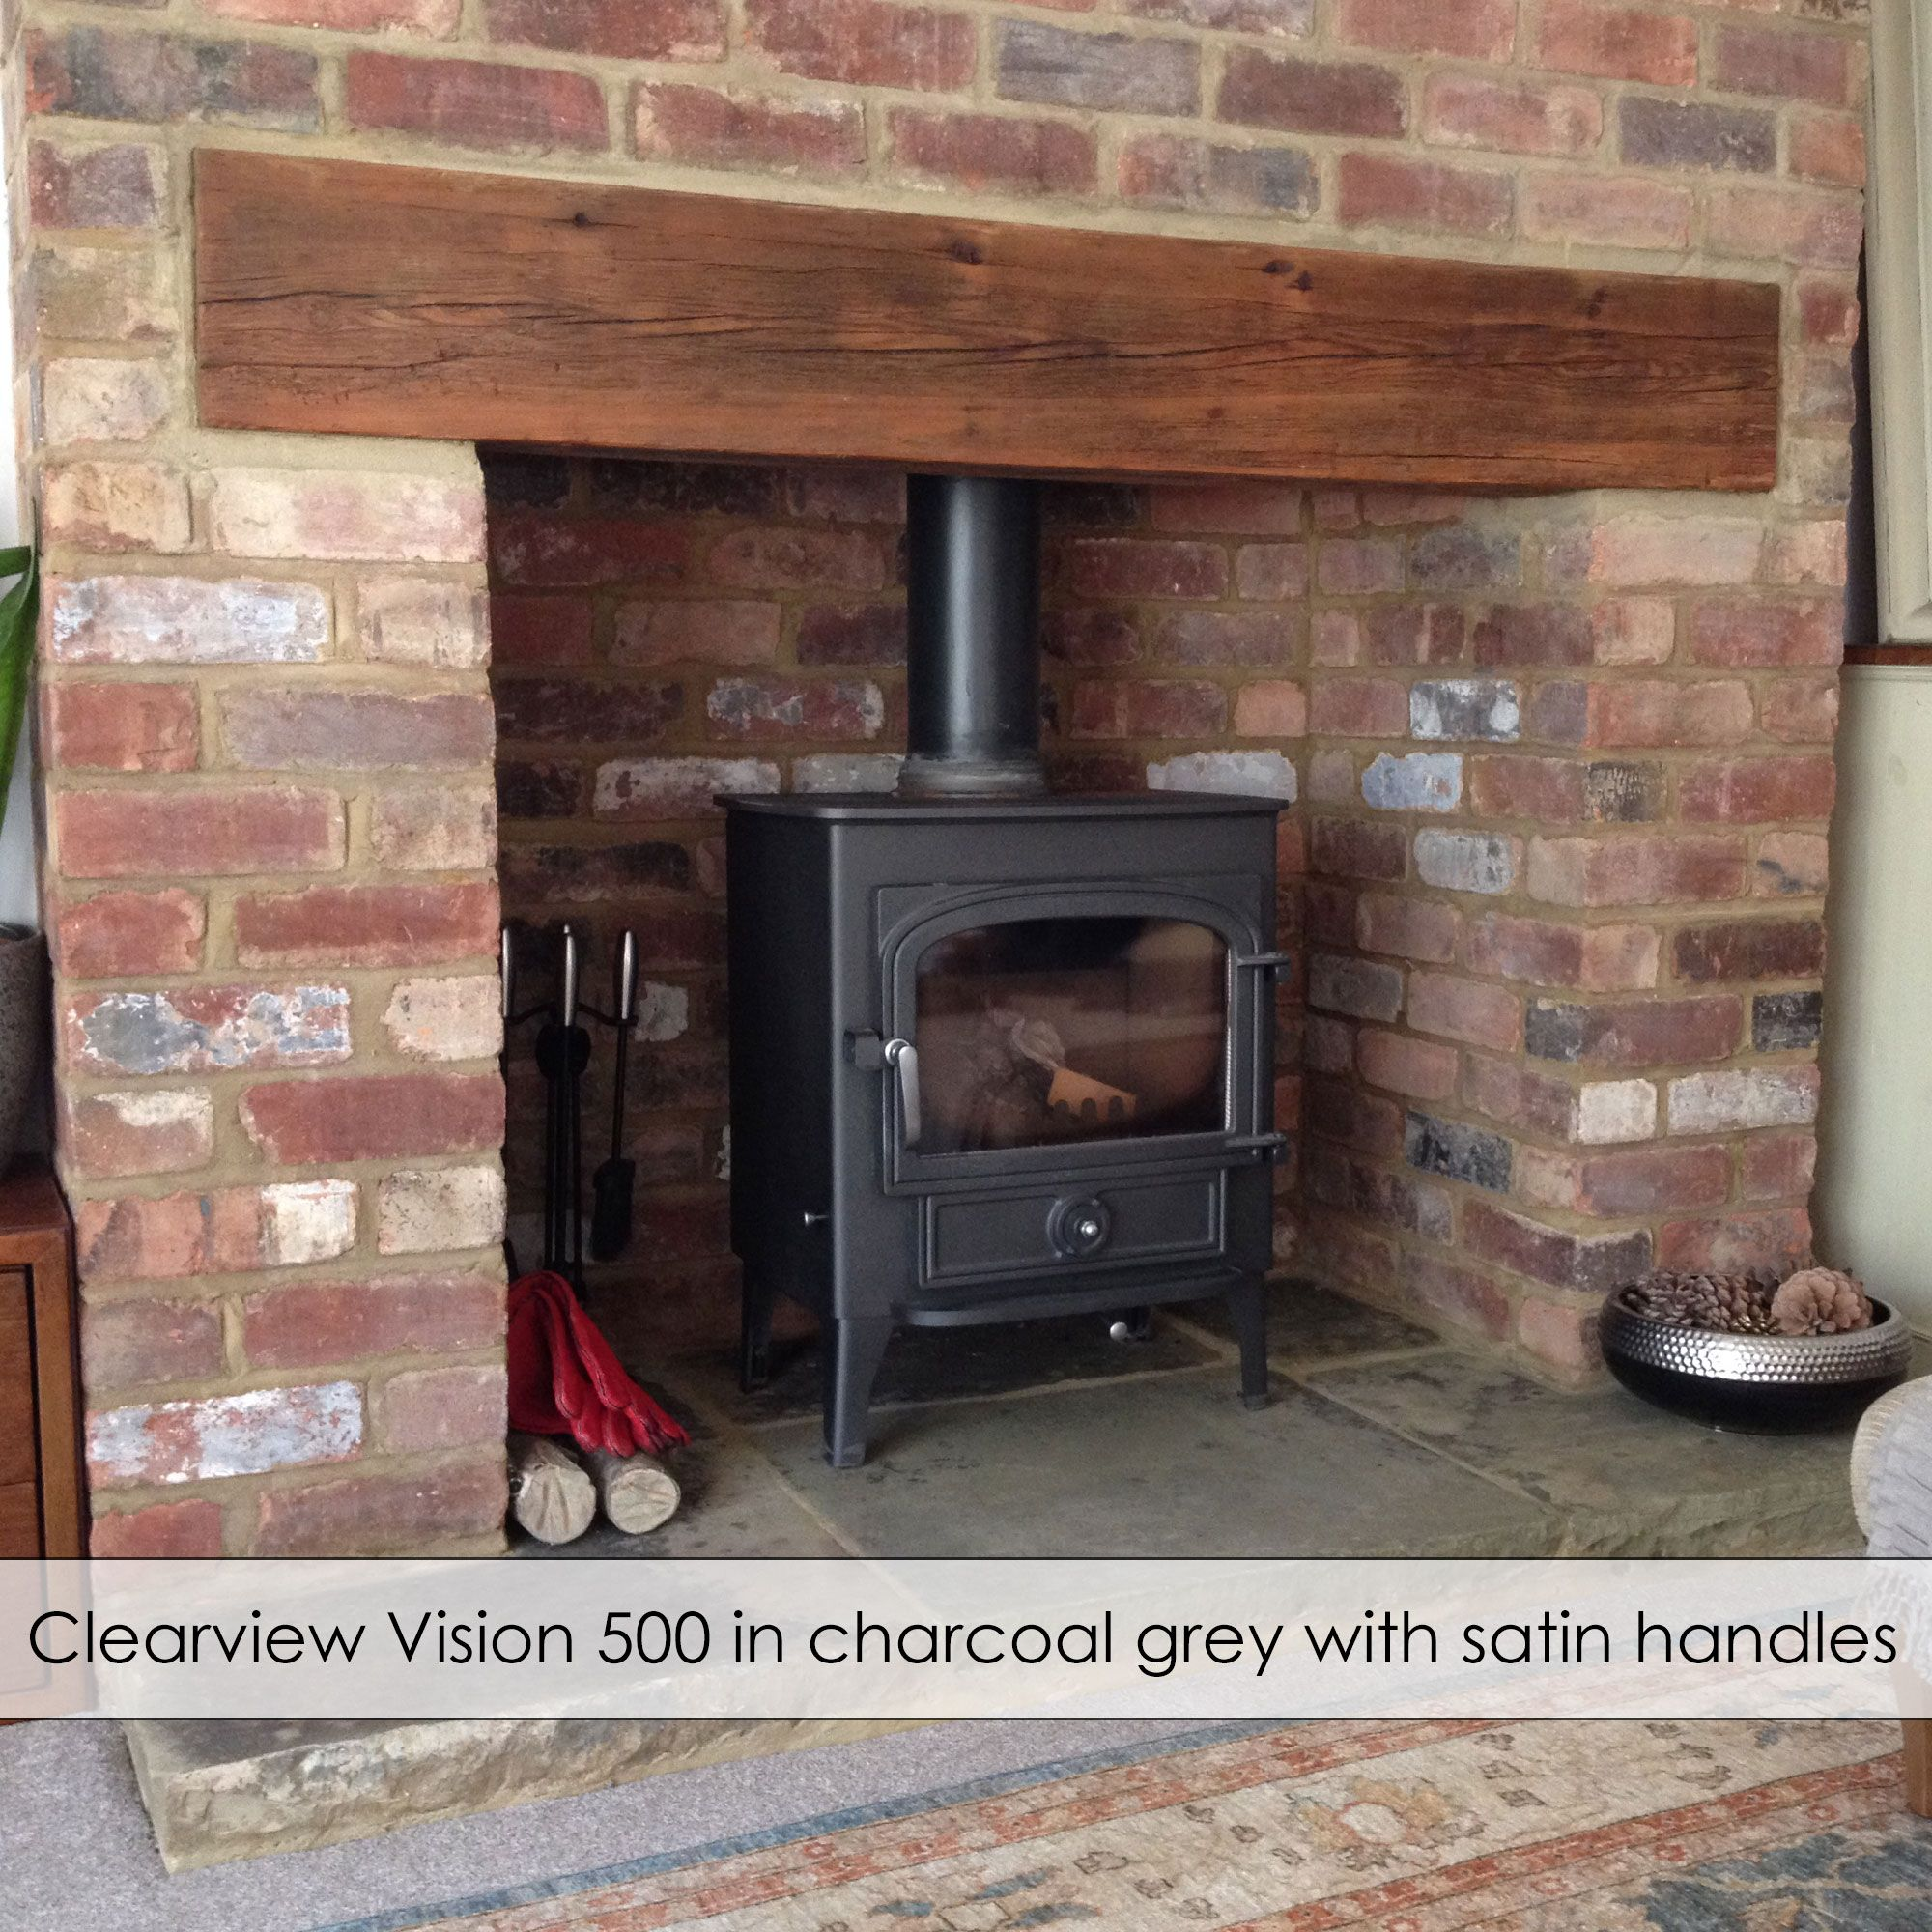 Flat Top Stove Prices Clearview Stoves Vision 500 Multi Fuel Flat Top Stove With Free